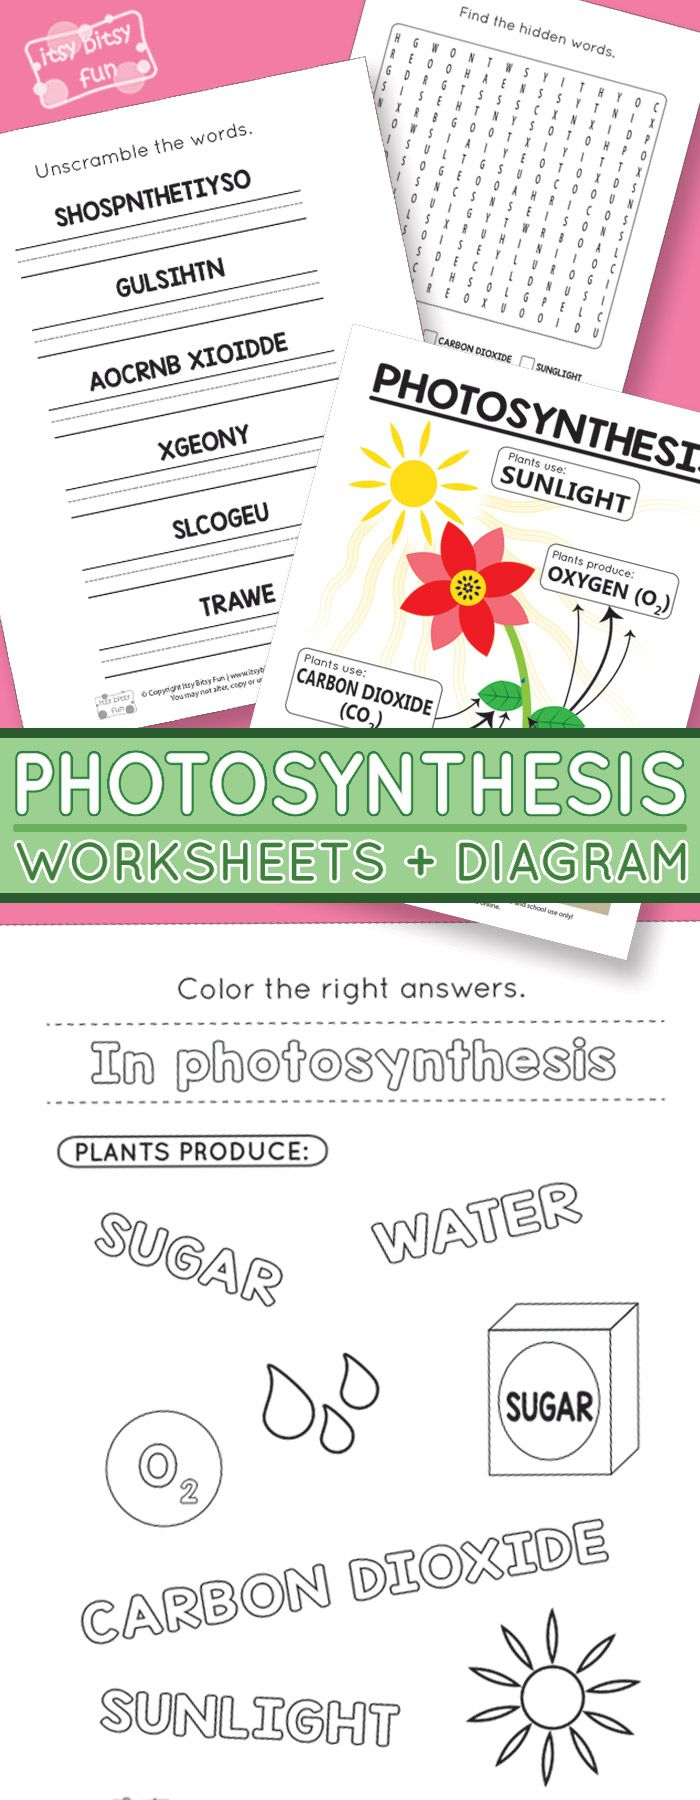 Photosynthesis Worksheets For Kids   Homeschooling Ideas   Free Printable Photosynthesis Worksheets